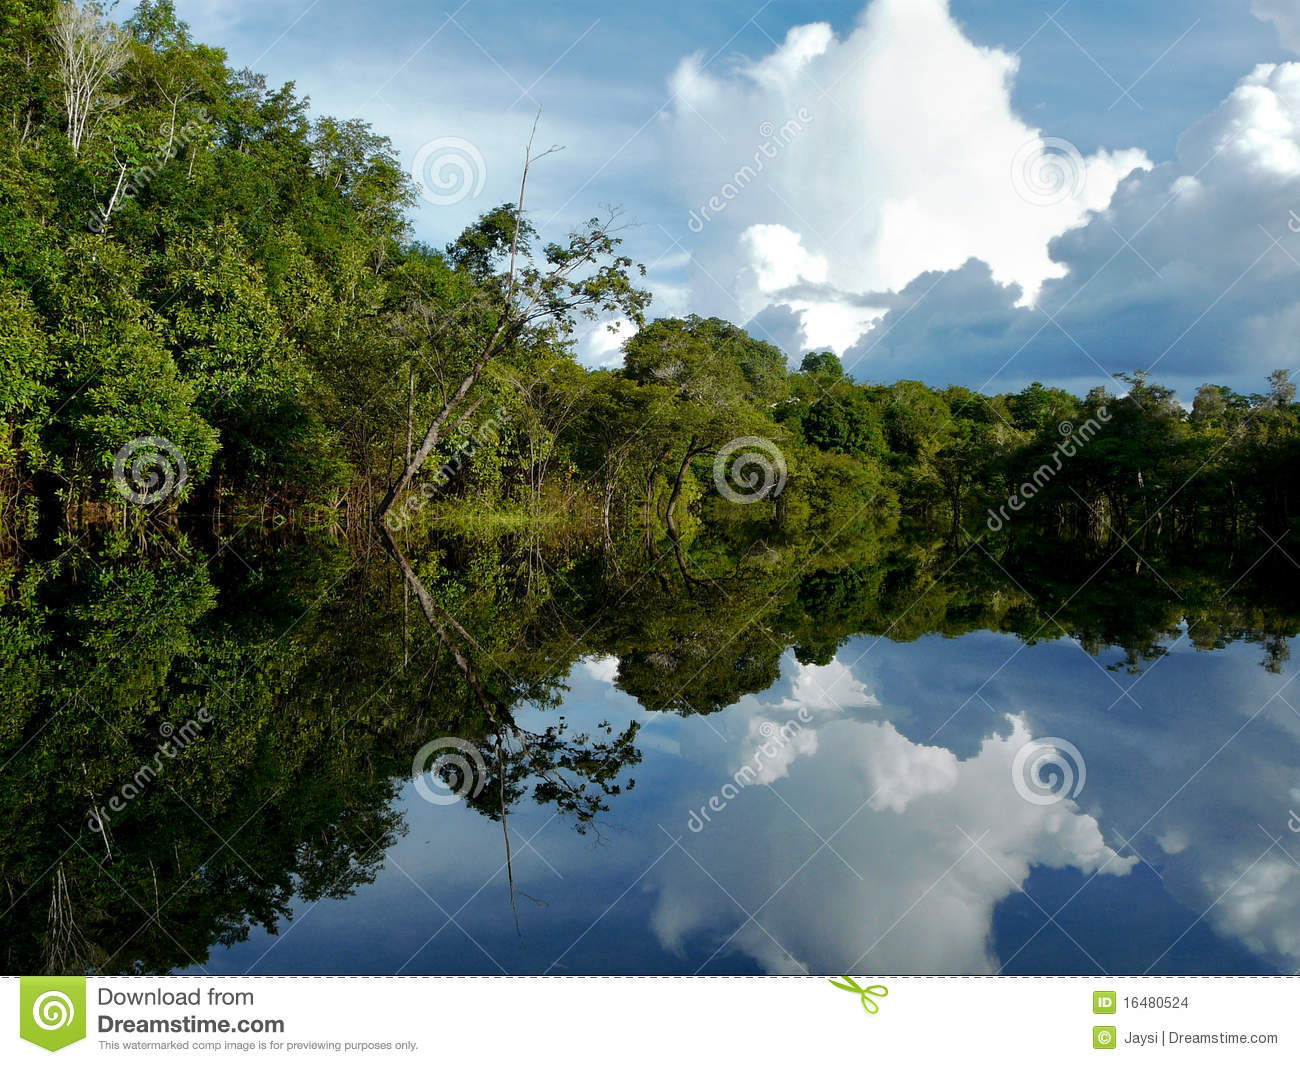 amazon river and brazil The amazon river is located in south america it runs through guyana, ecuador, venezuela, bolivia, brazil, colombia and peru the length of the amazon river is approximately 6400 kilometres (4000 miles).